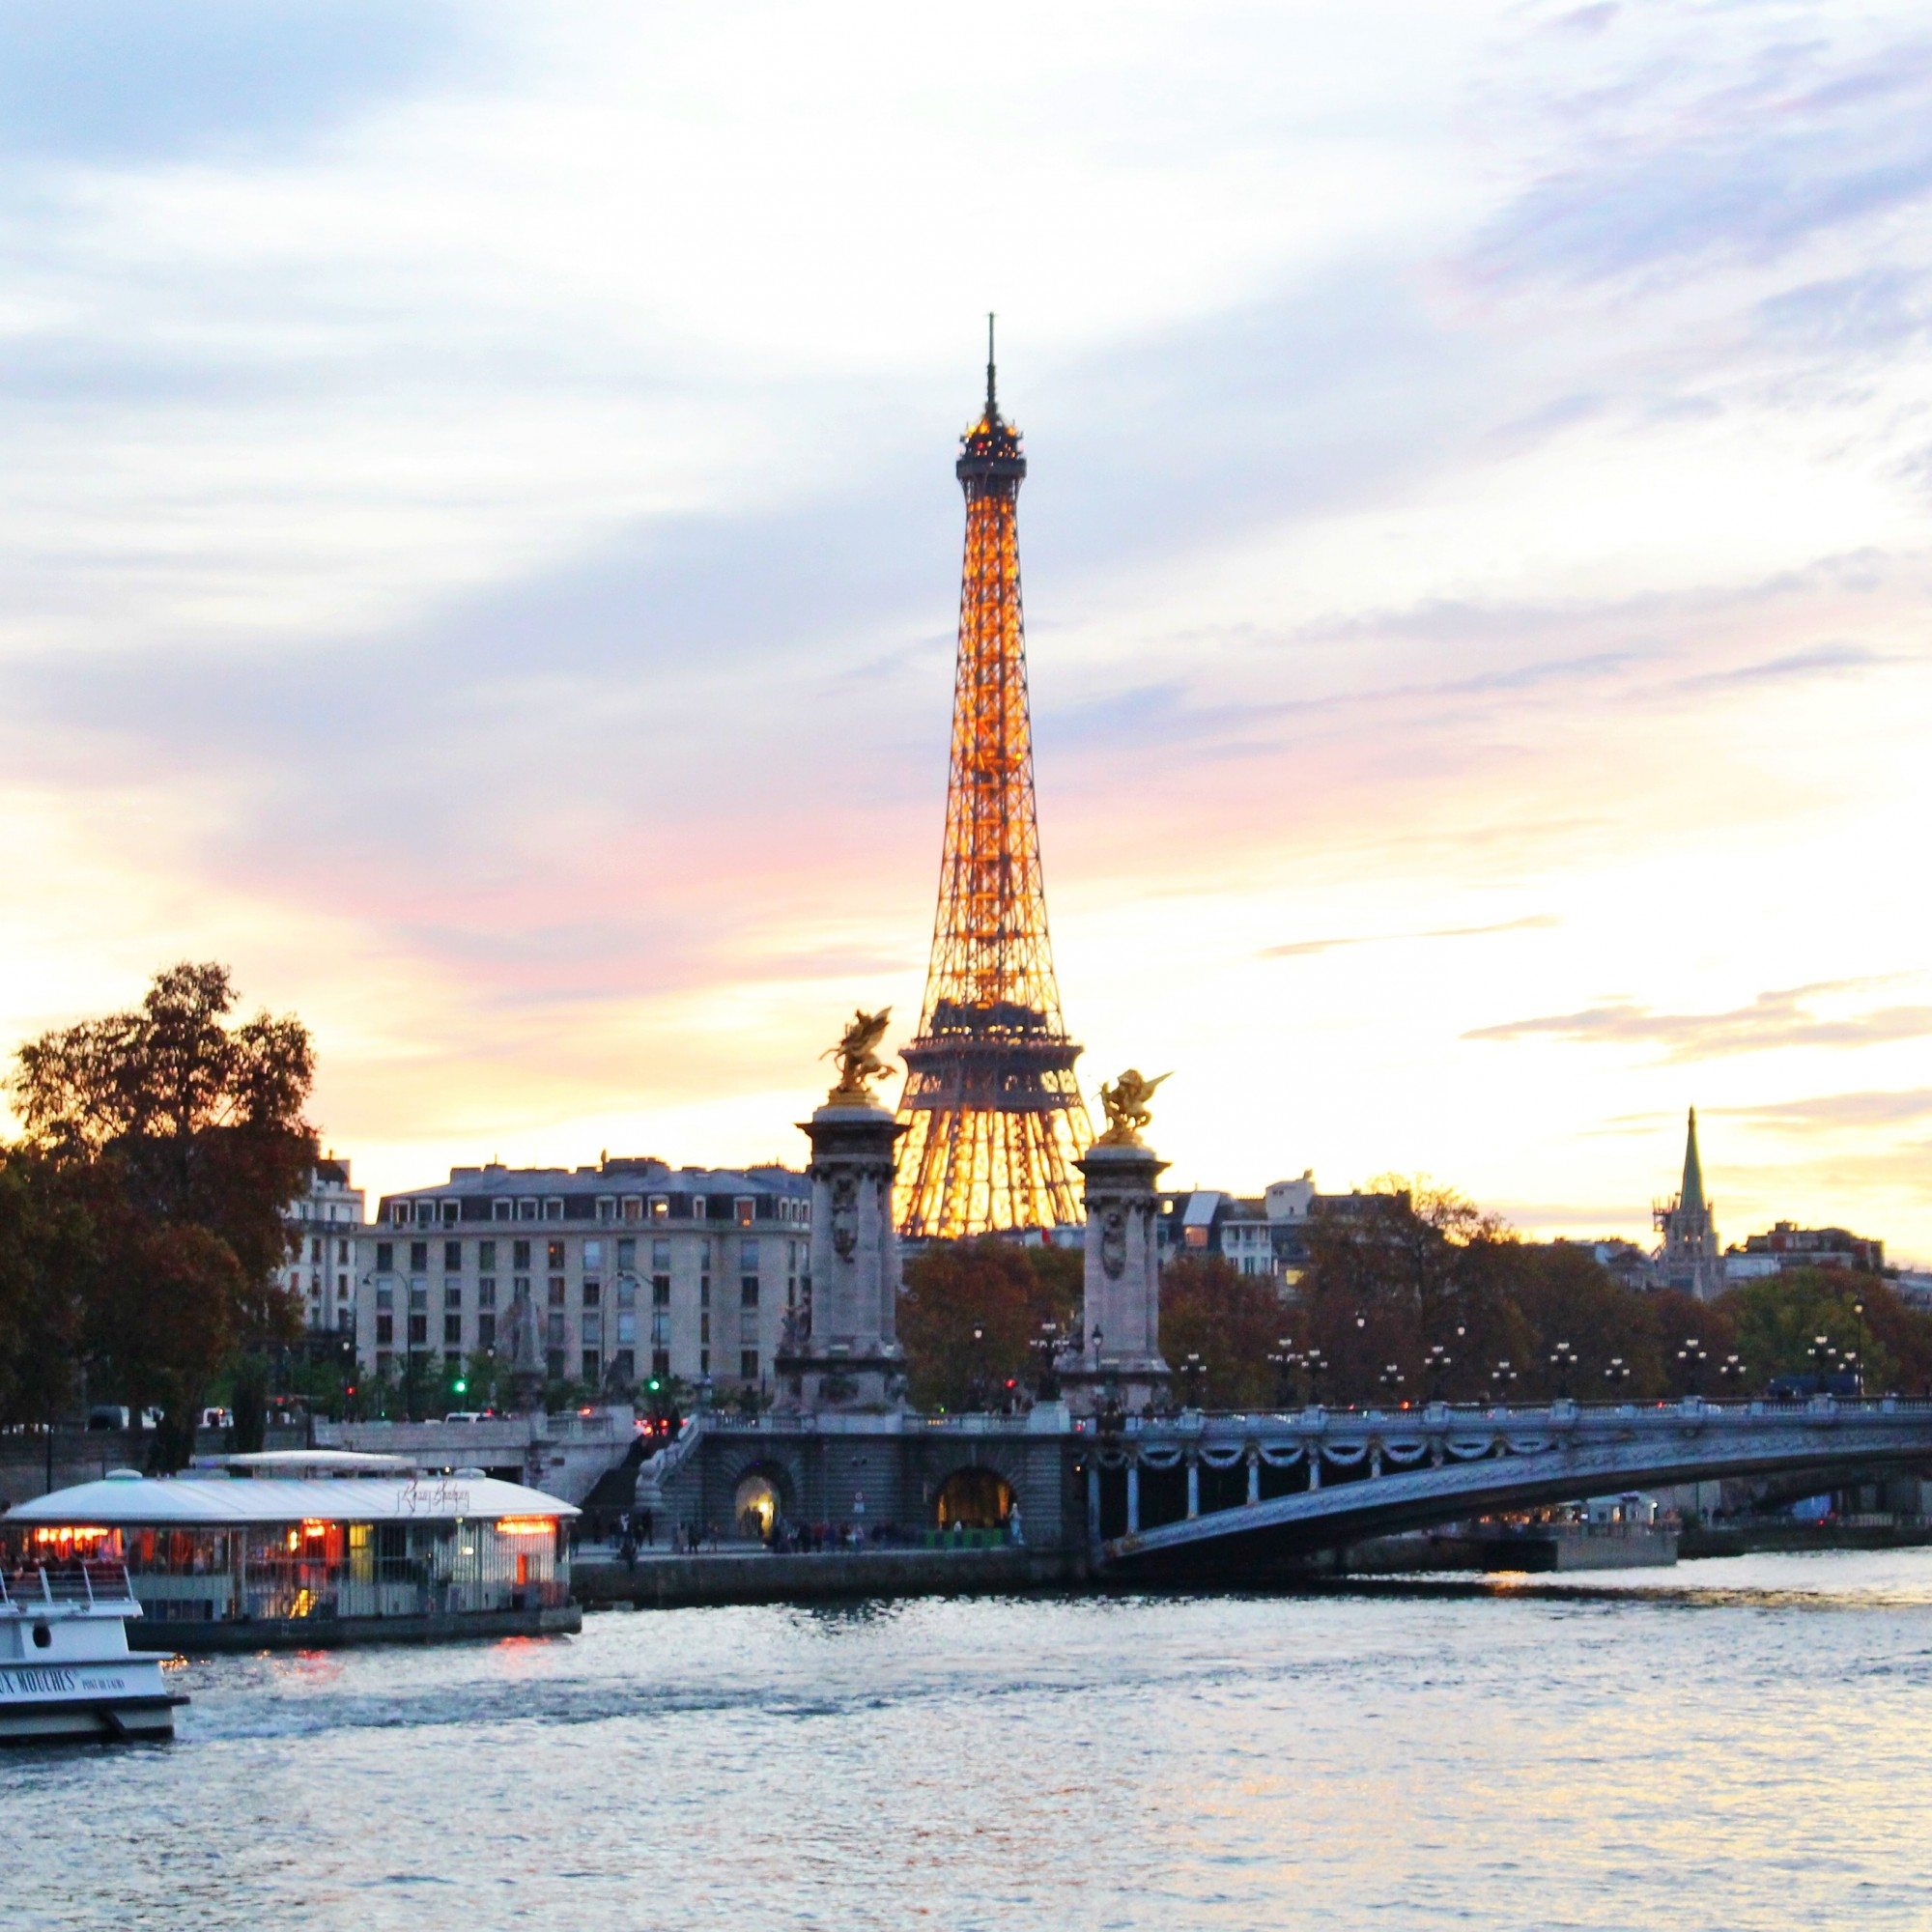 Pastel sunset over the Eiffel Tower and the Pont Alexandre III. Interested in an internship with HiP Paris Blog? Learn more at http://haveninparis.com/careers.php.